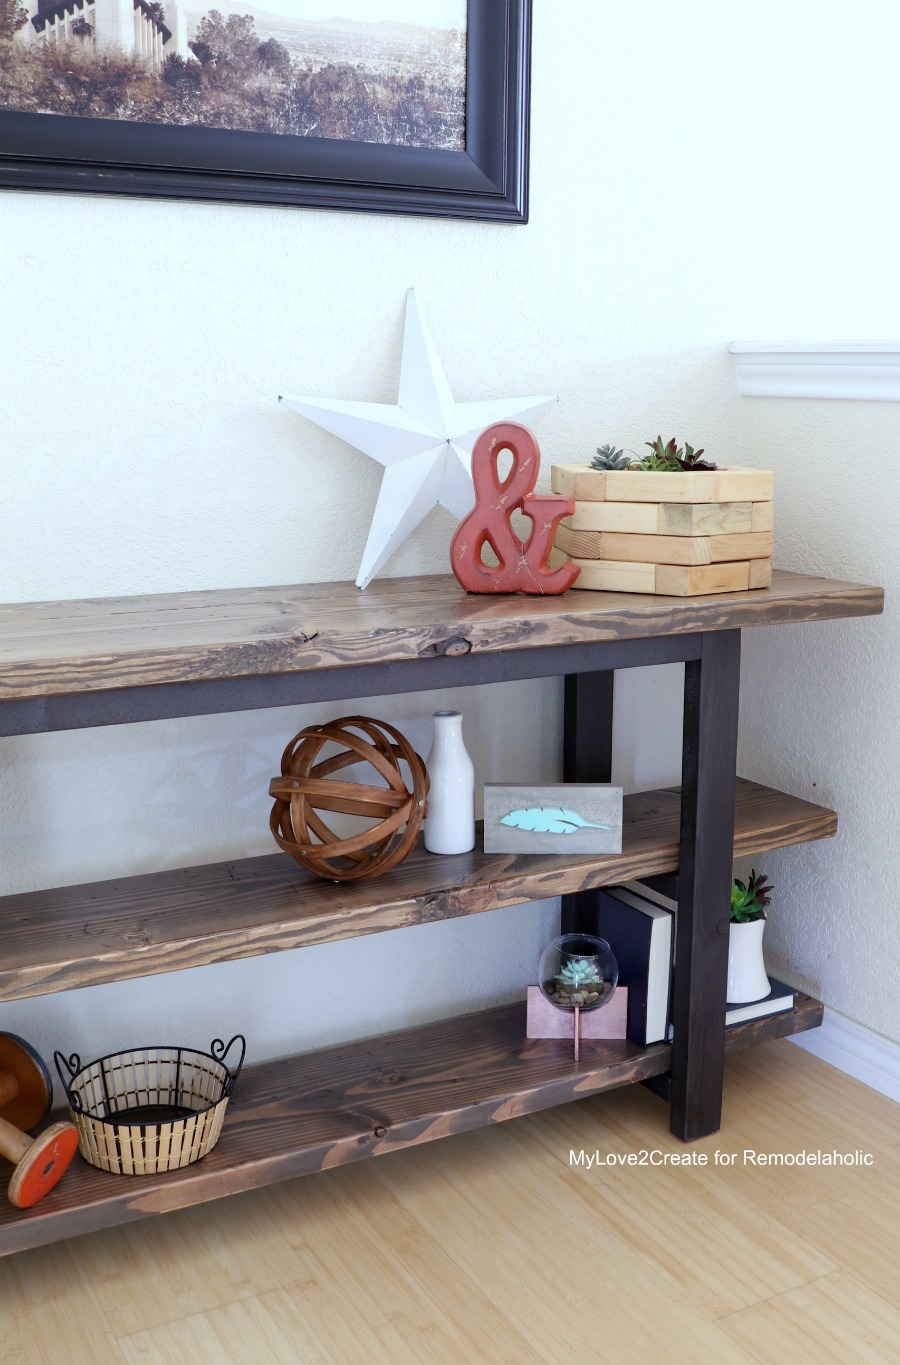 Remodelaholic pottery barn inspired modern rustic console table diy modern rustic console table easy diy console table mylove2create geotapseo Choice Image